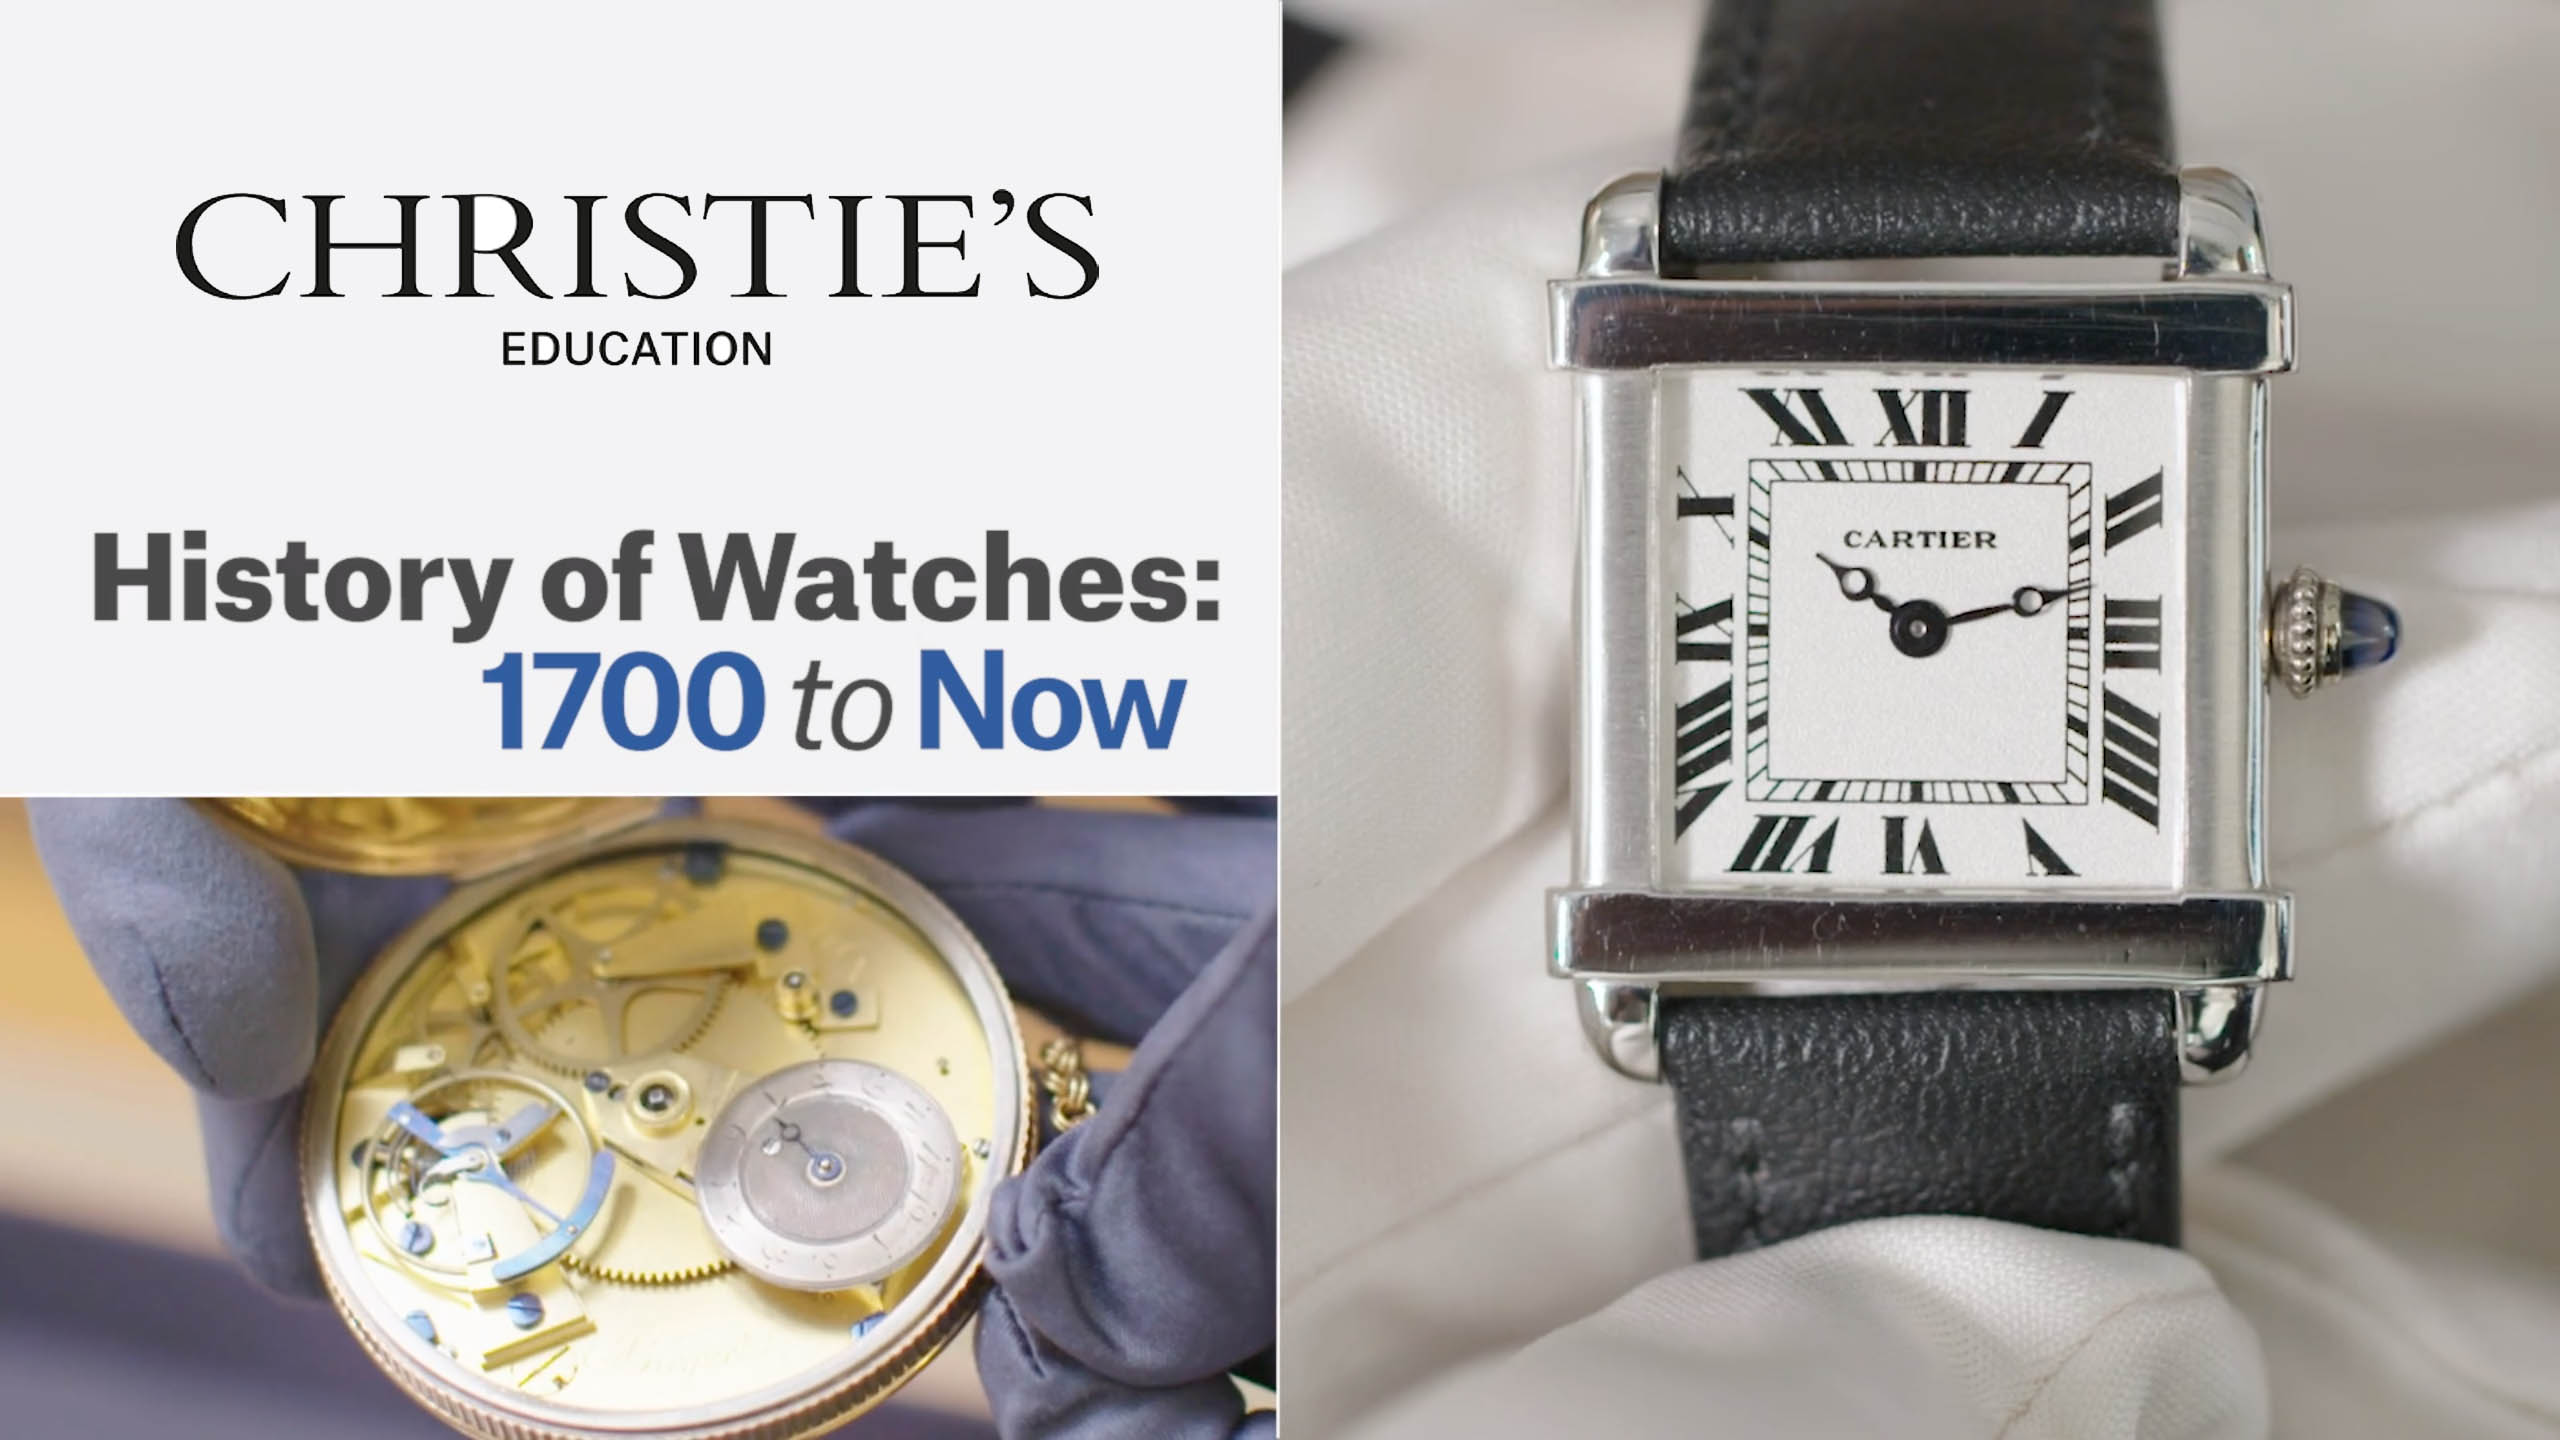 Online Course - Explore the History of Watches from 1700 to Now With Christie's Education